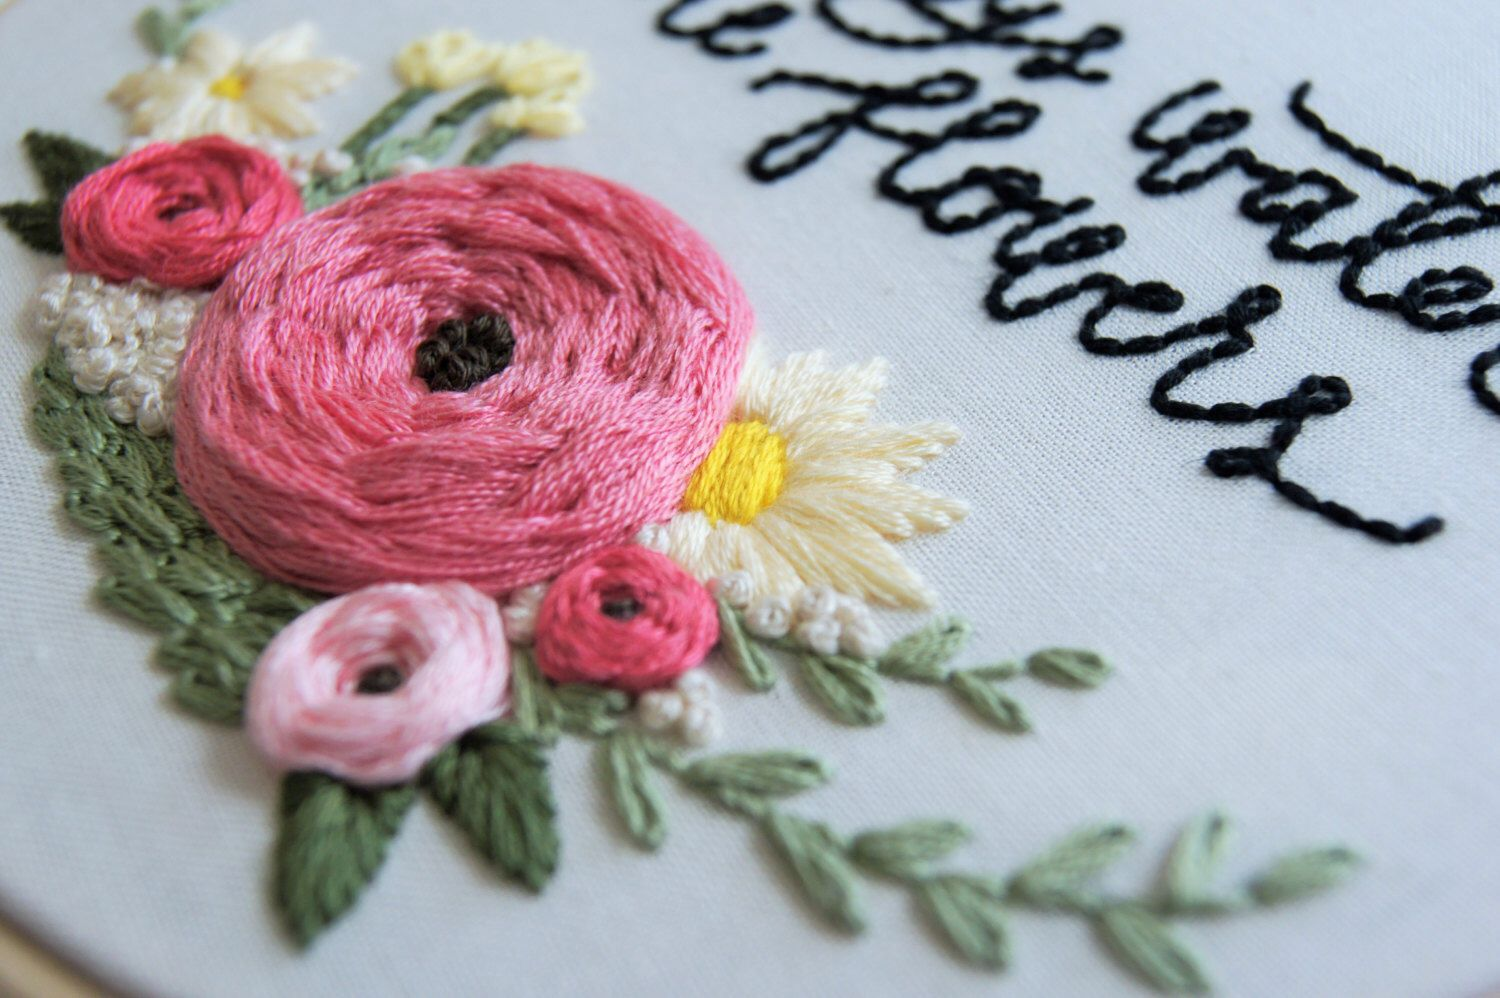 Hand embroidery pattern floral wreath pattern embroidery supplies